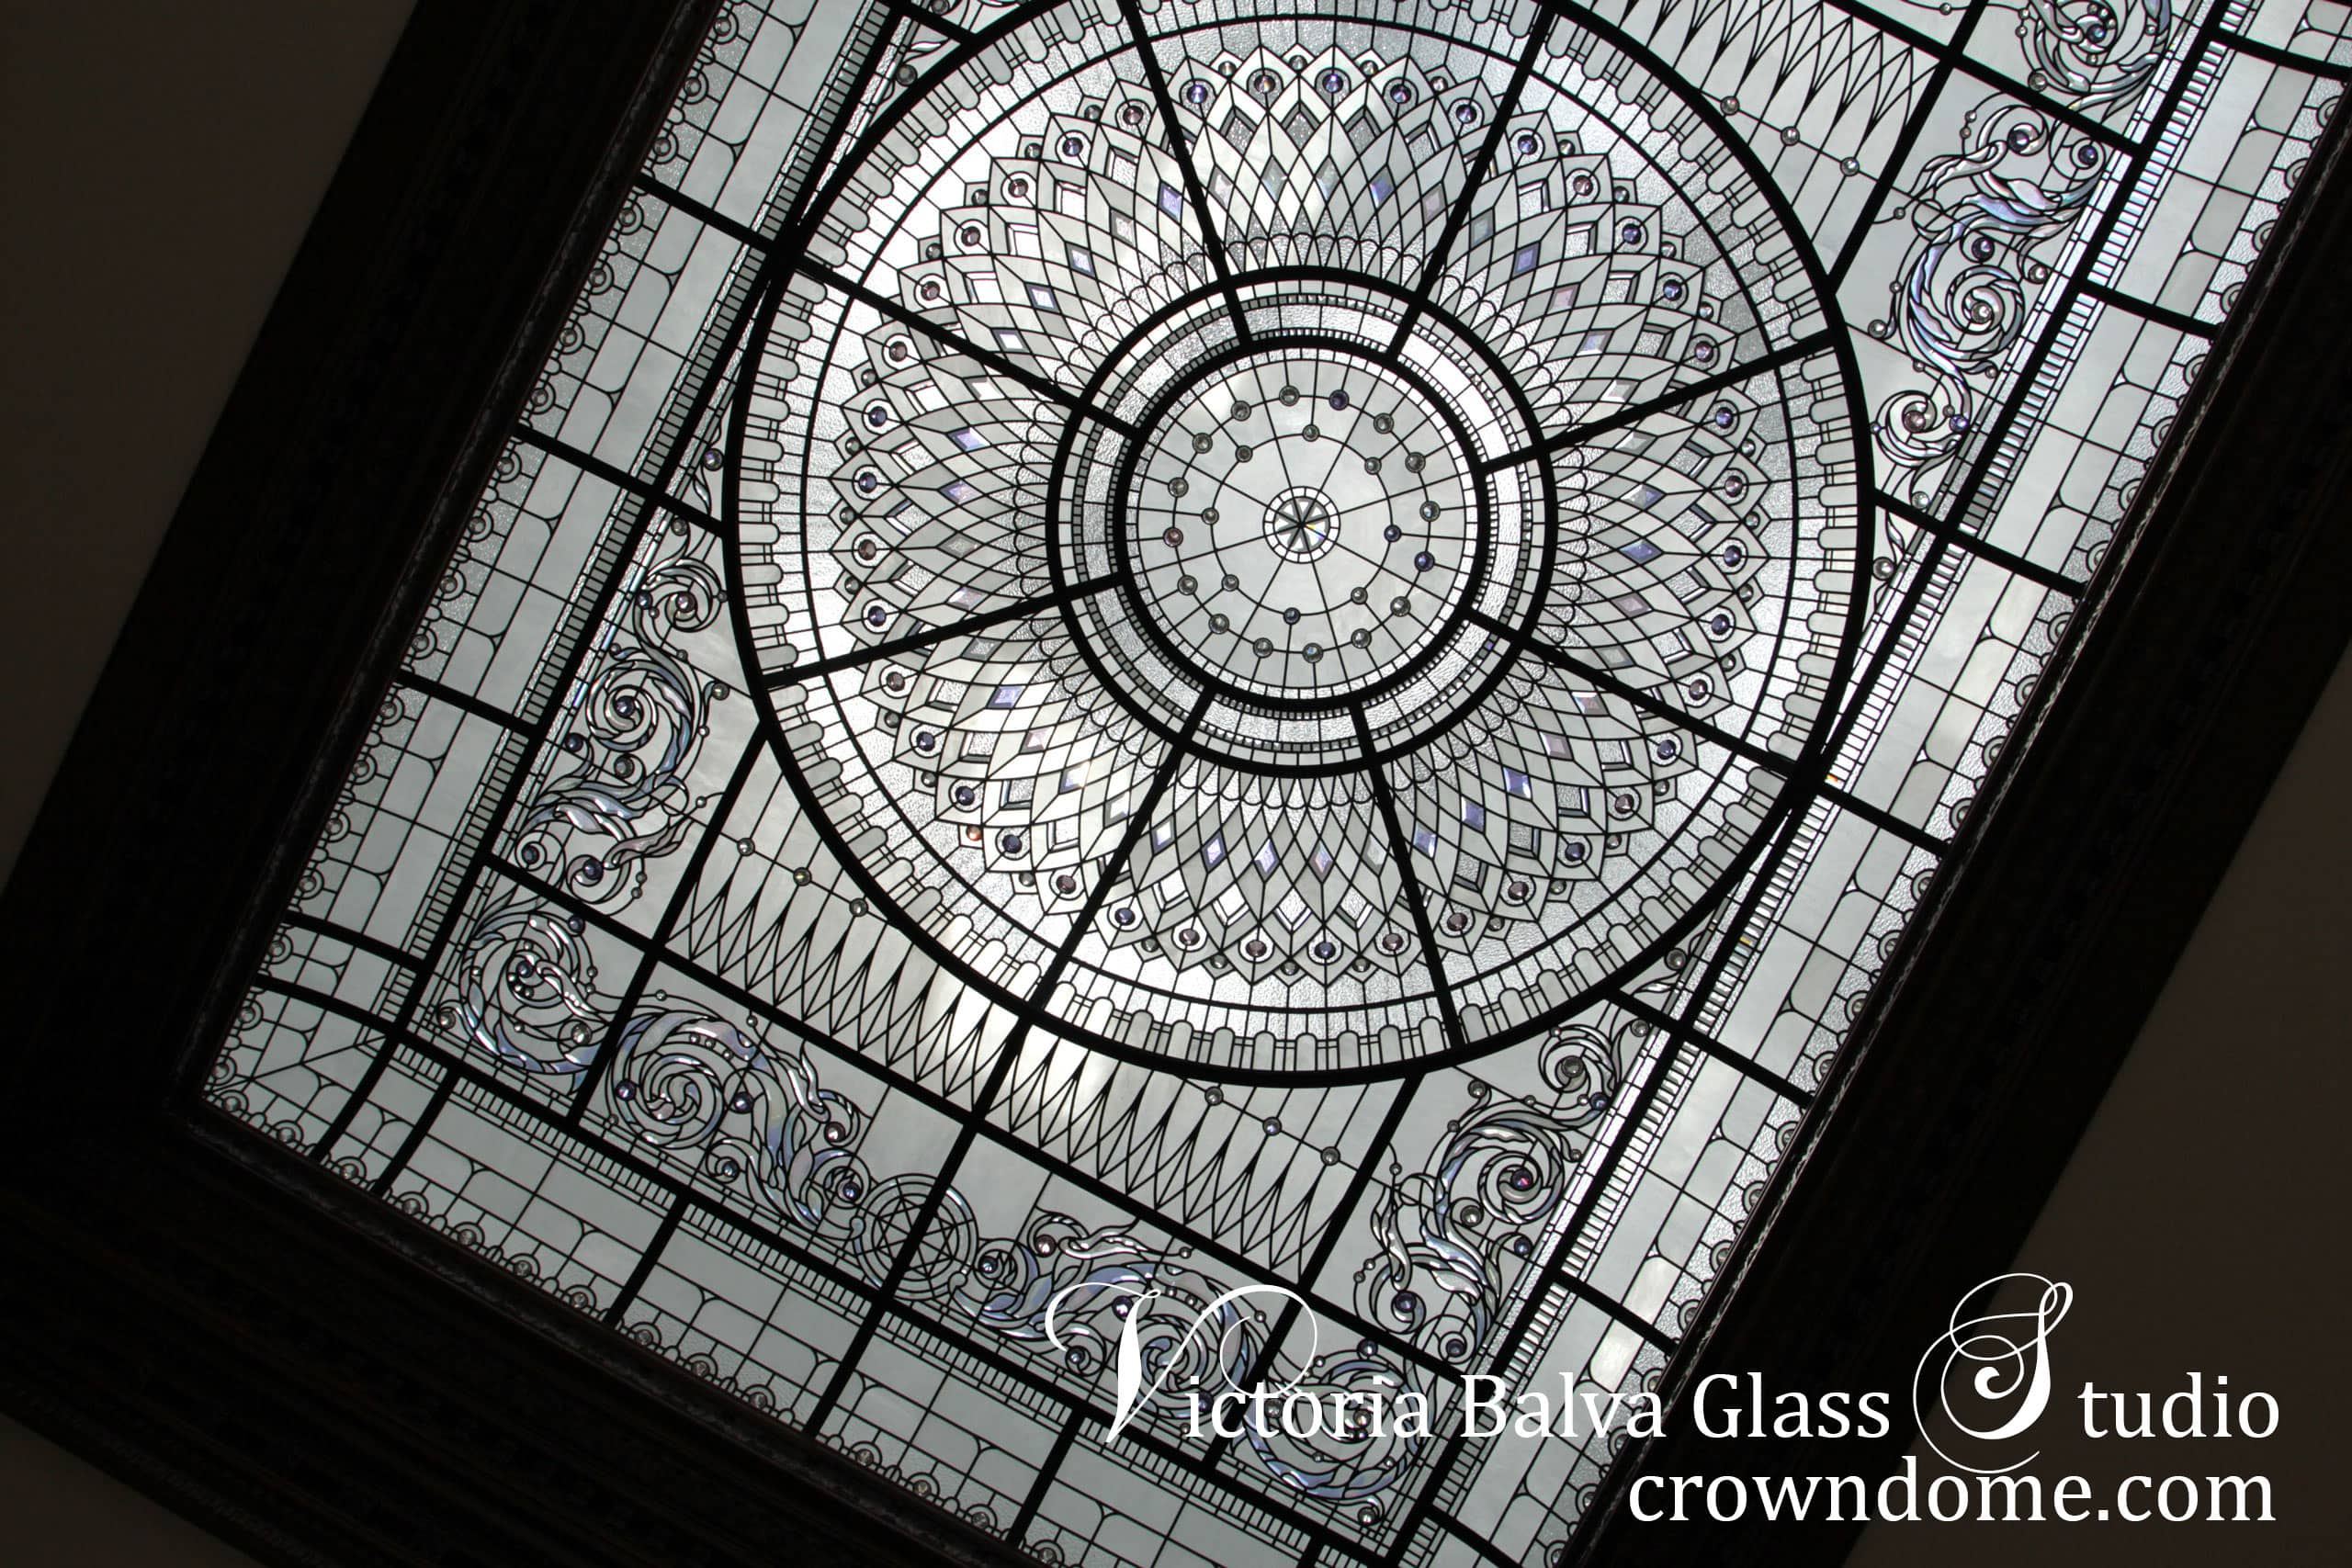 Large leaded glass dome skylight